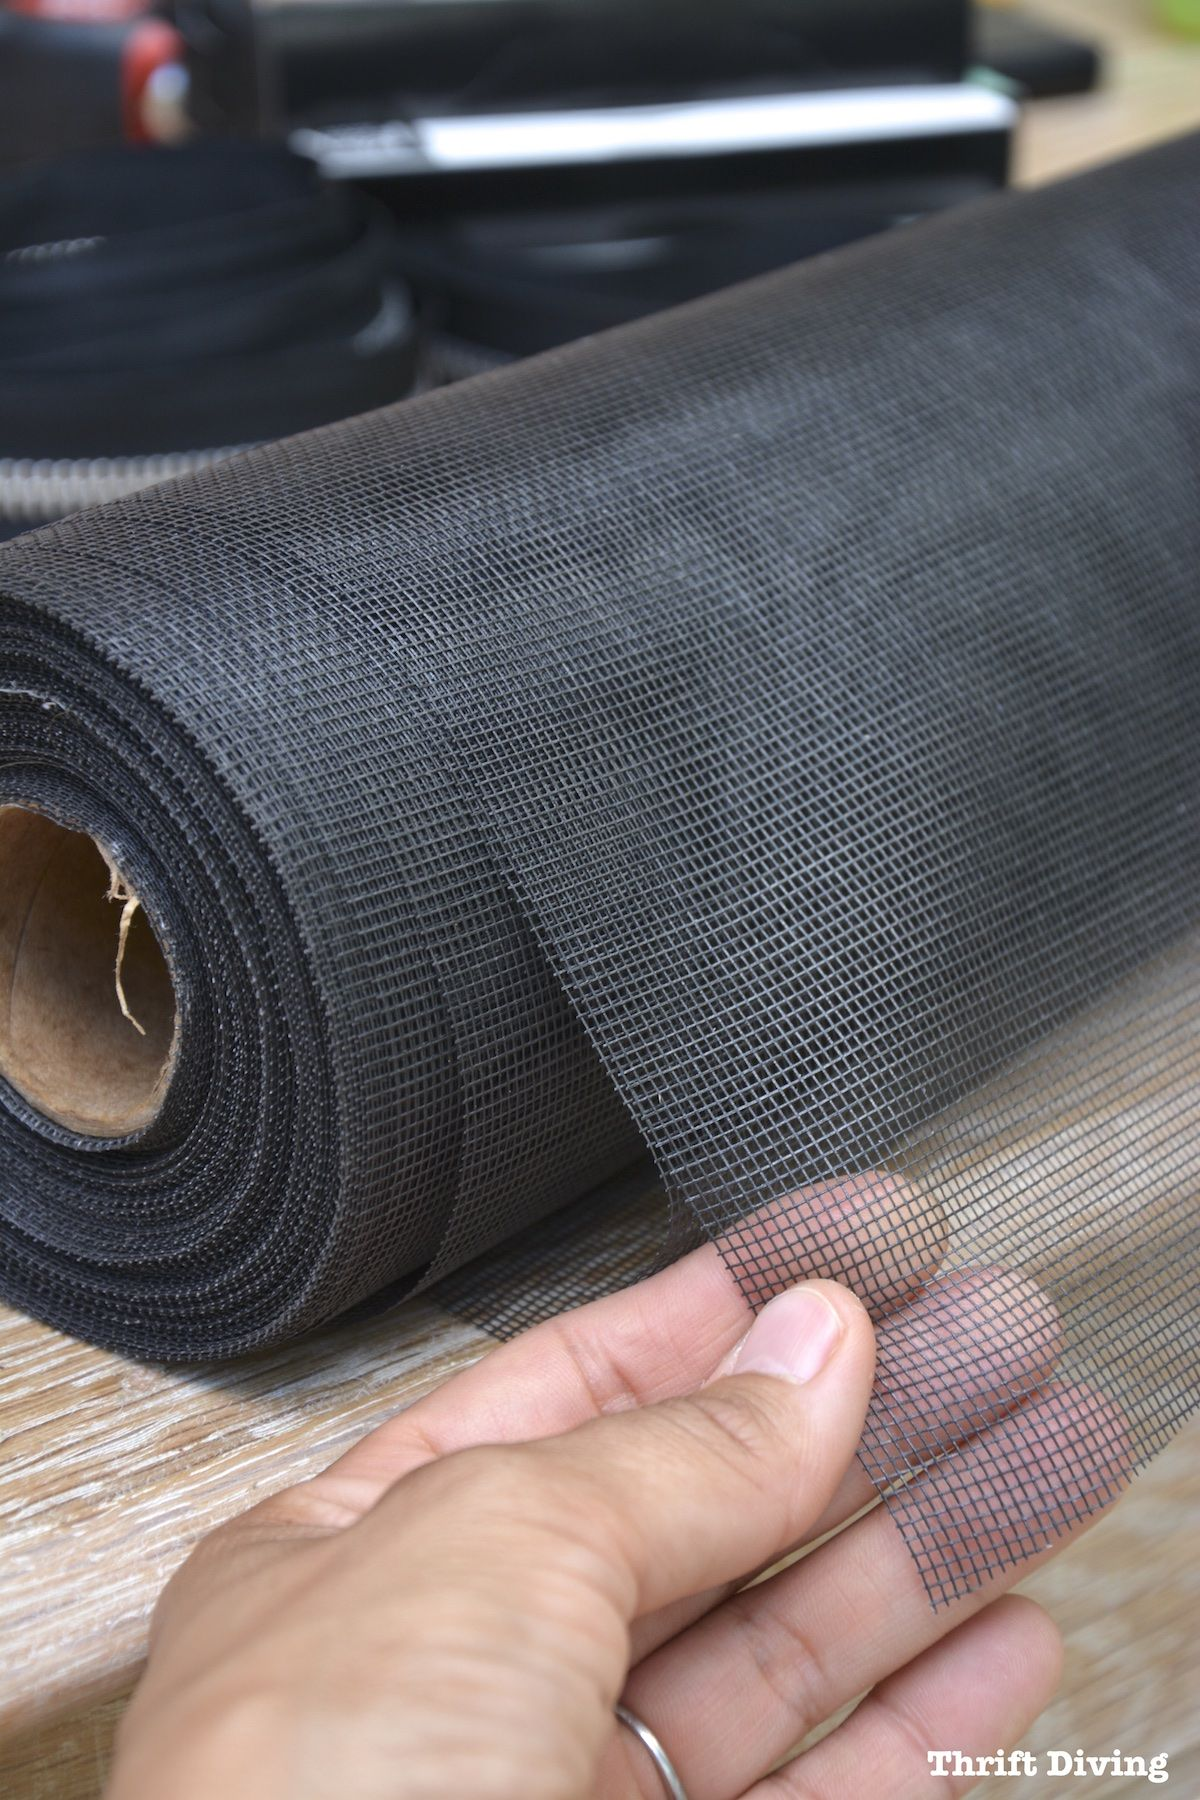 How To Make A Garage Door Screen   Use A Roll Of Fiberglass Screen To Keep  Out Flying Insects, Such As Mosquitos, Stink Bugs, Bees, Moths, Flies, And  Gnats.